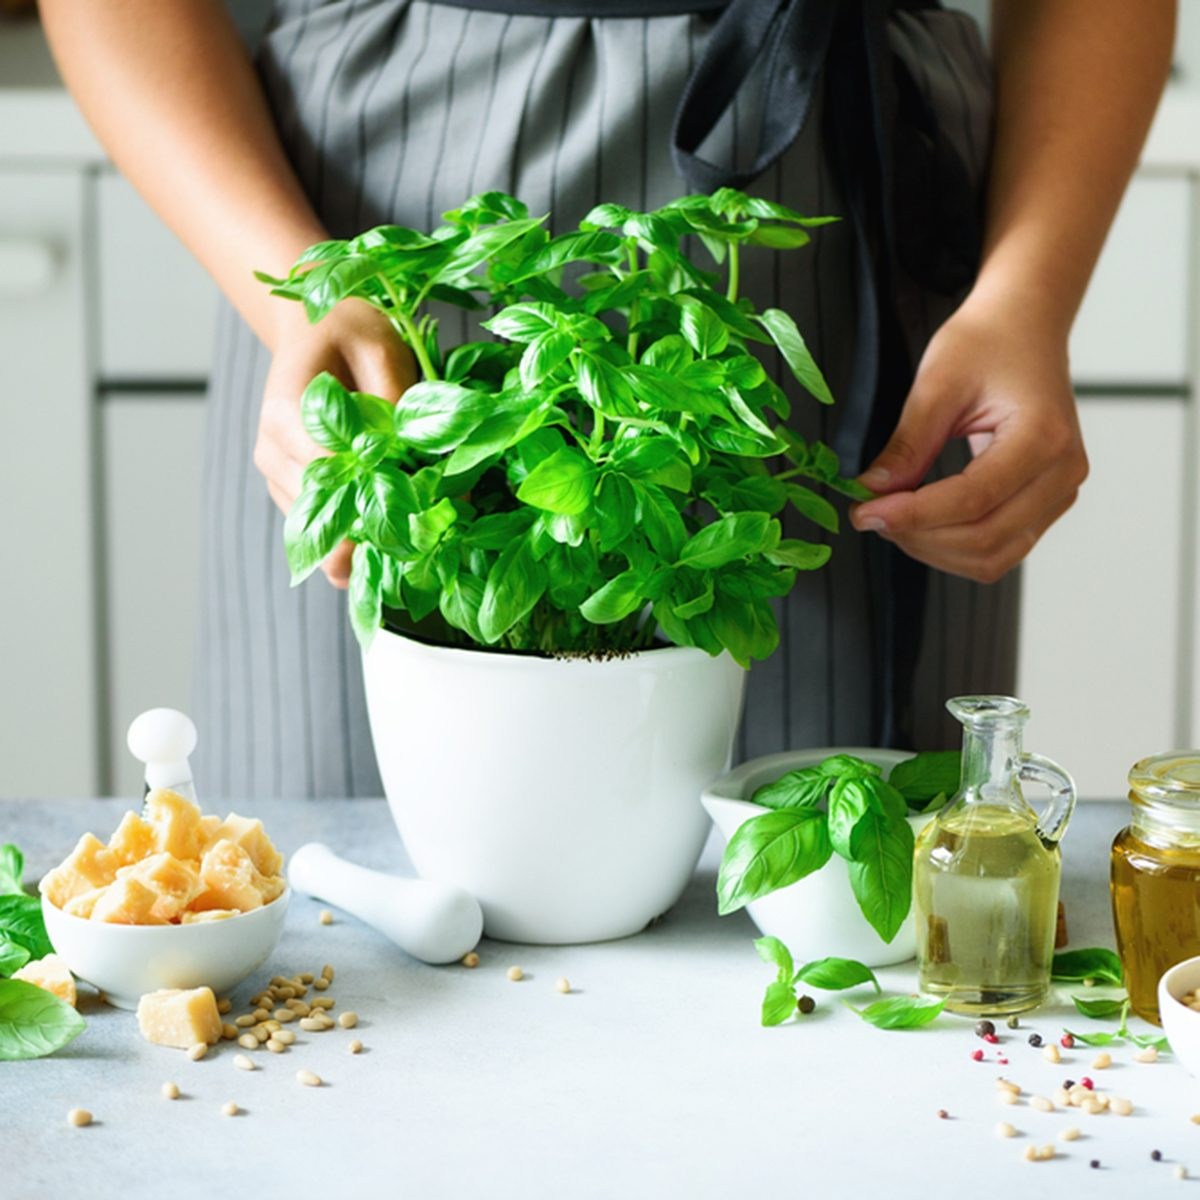 Woman in style apron holding pot with fresh organic basil, white kitchen interior design.